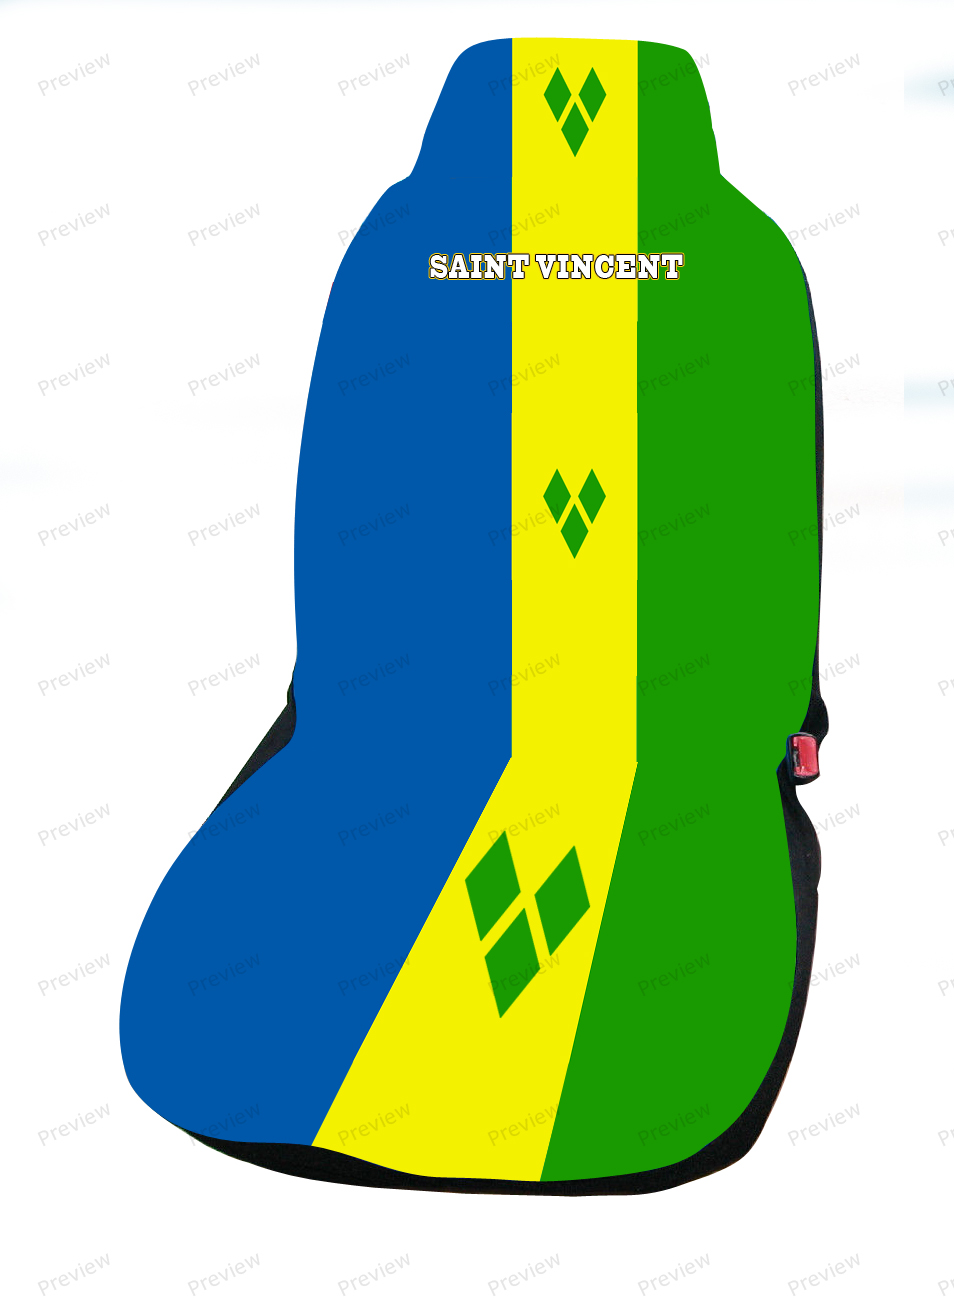 images/Saint vincent image car cover seat.jpg